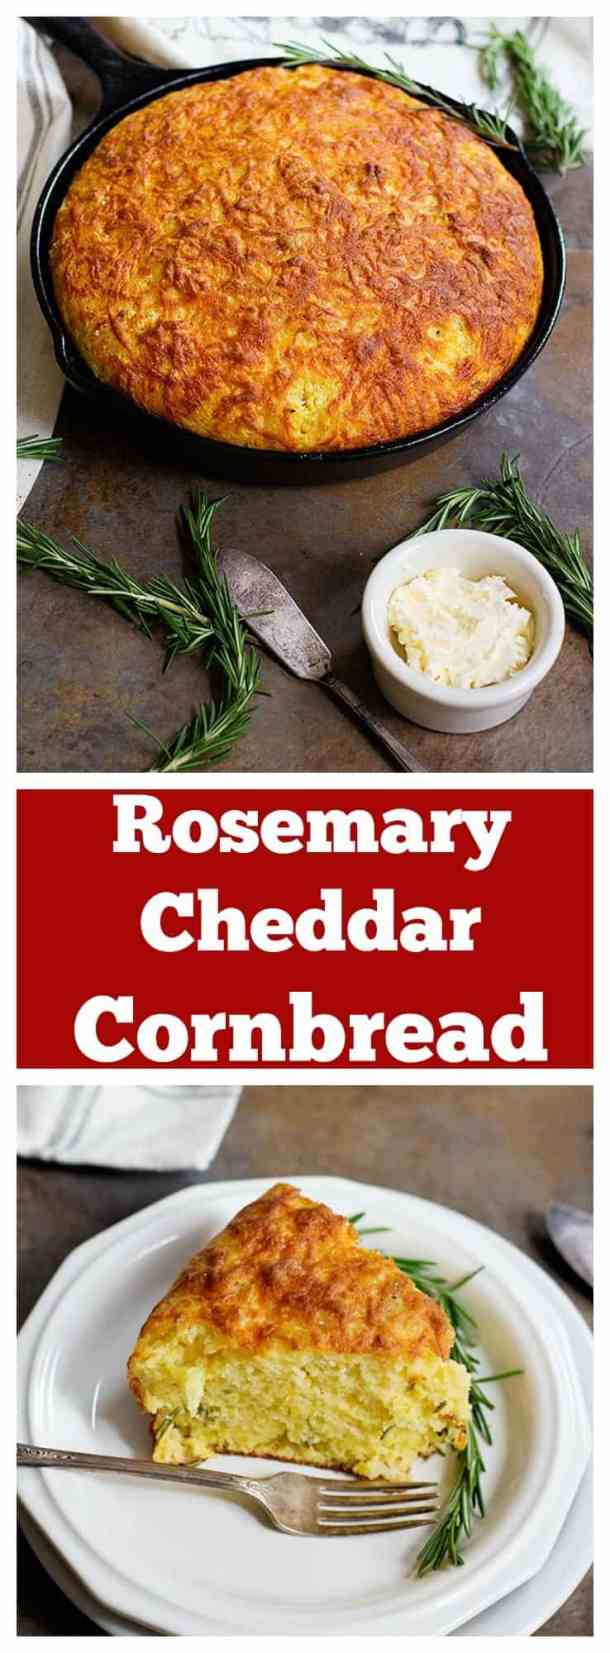 This Rosemary Cheddar Cornbread is moist and full of delicious flavors. It's packed with aromatic rosemary baked in a cast iron skillet and has a beautiful crispy crust.